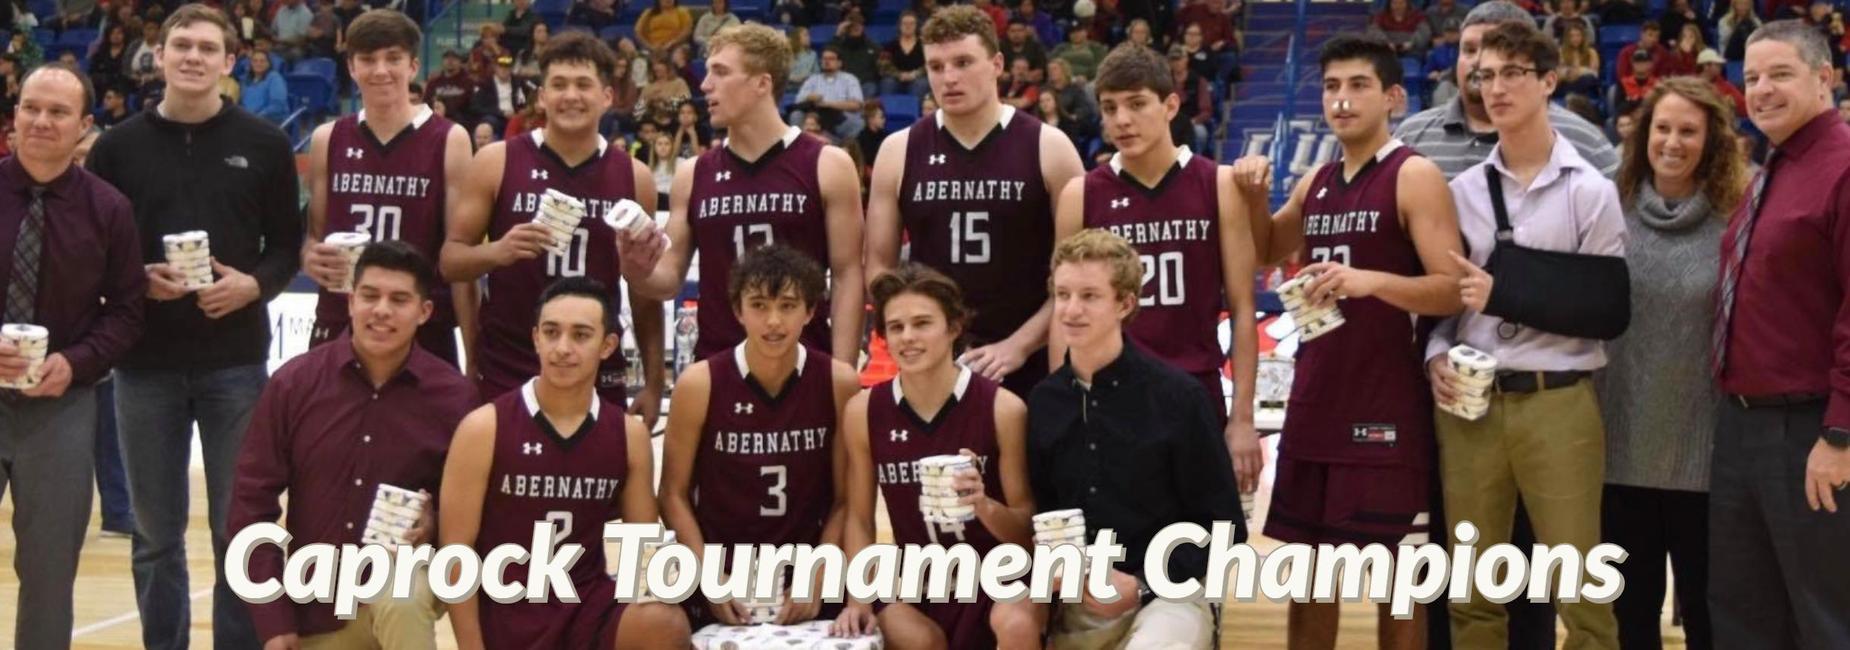 HS boys basketball team pose with their trophy